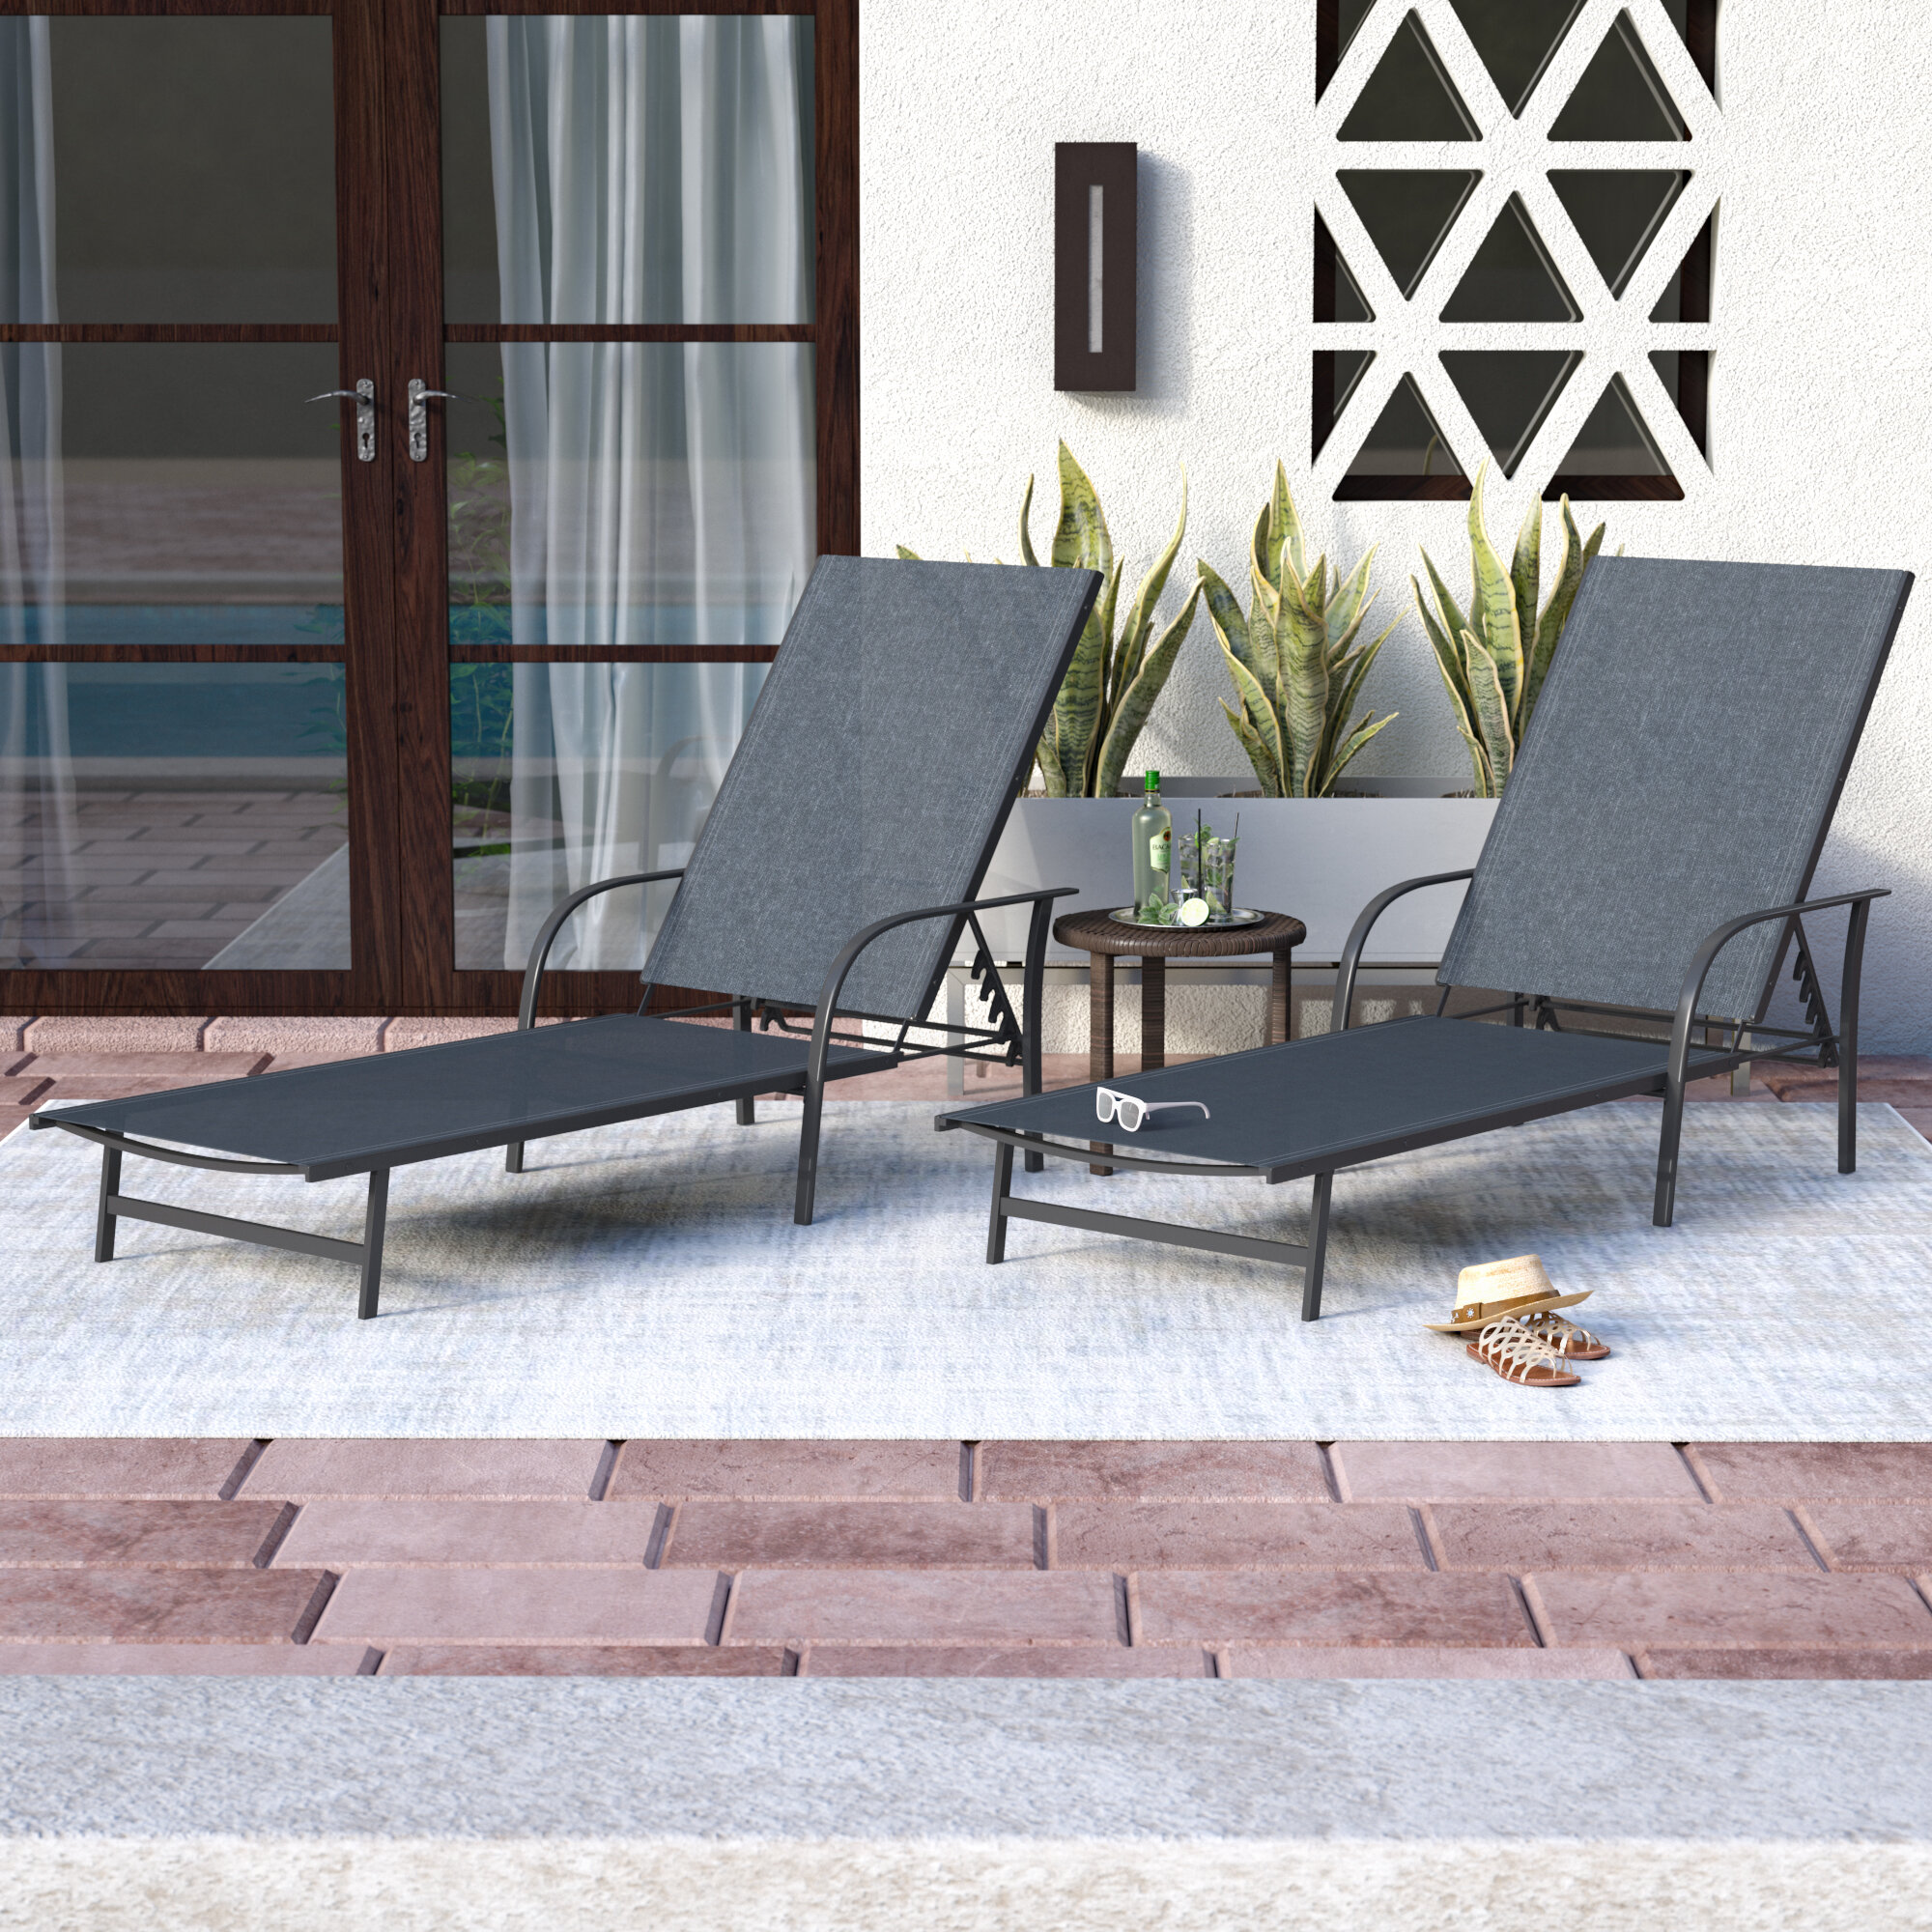 chaise lounges park lounge toffee cushions outdoor beacon with bay steel p hampton wicker